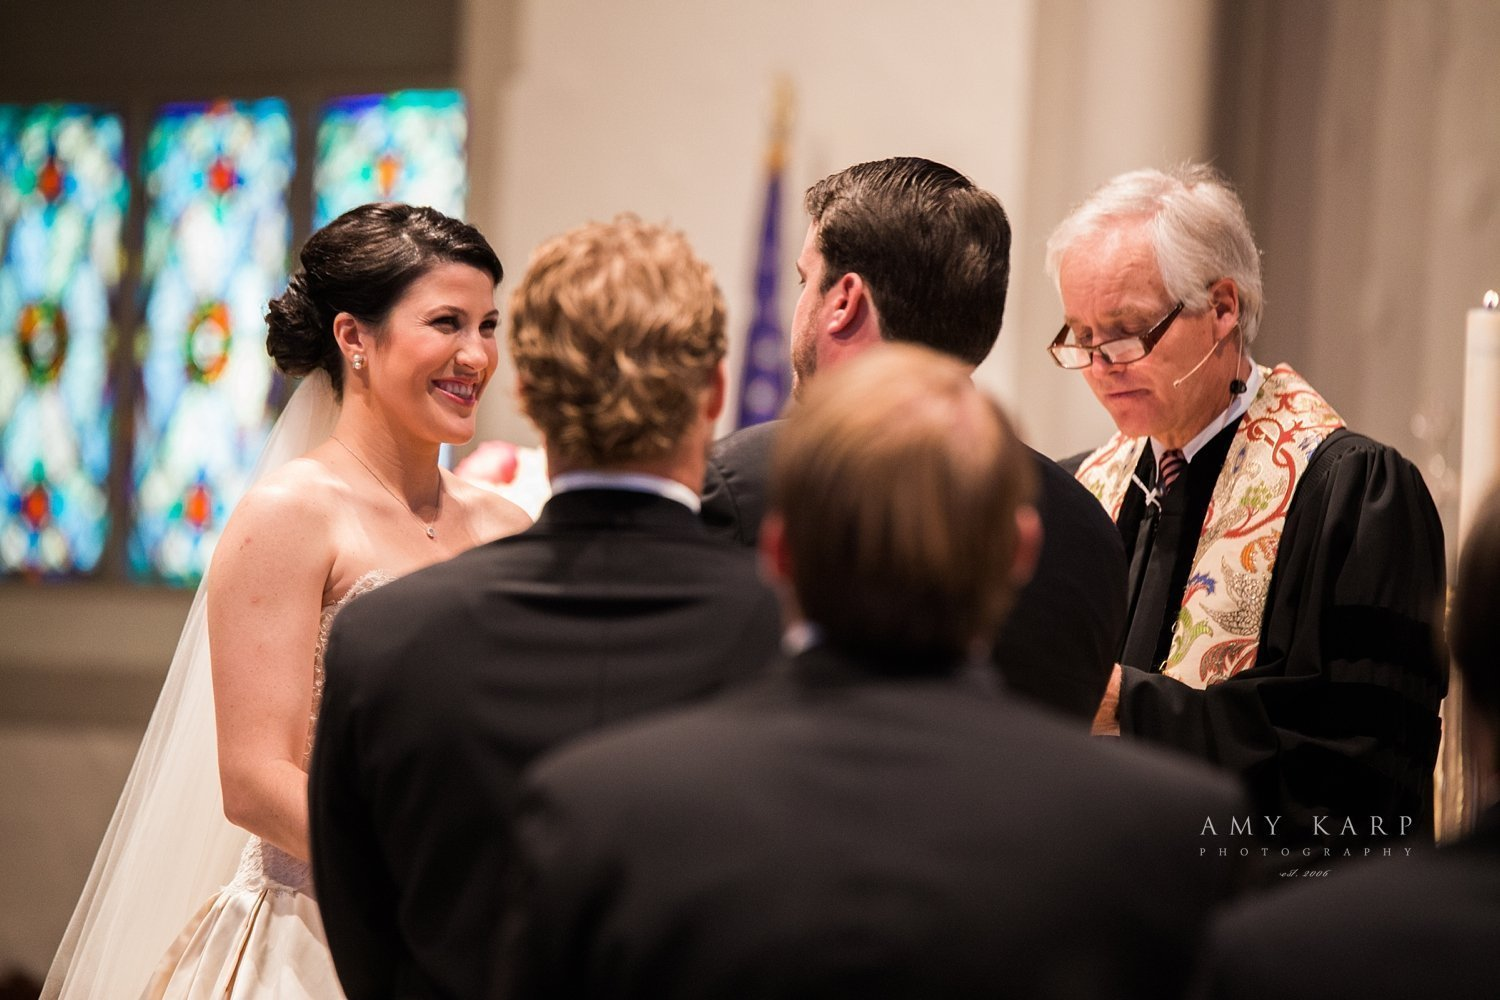 dallas-wedding-dcc-highland-park-hpumc-amanda-jm-16